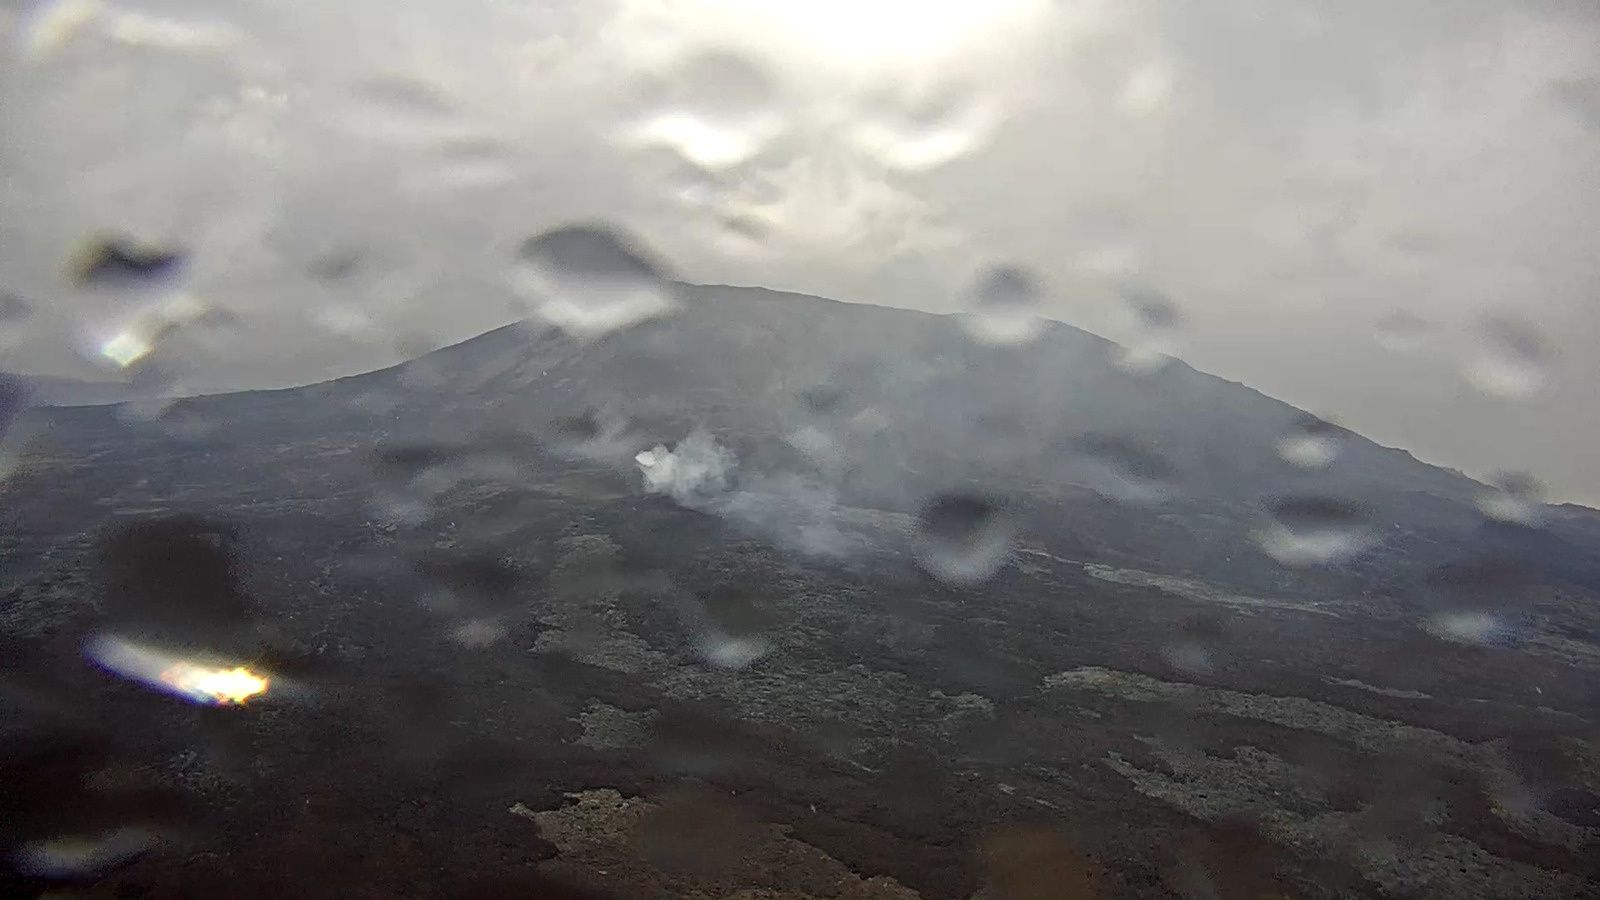 Mauvaises conditions sur La Fournaise - webcam IRT - OVPF 30.10.2018 12h30 locale